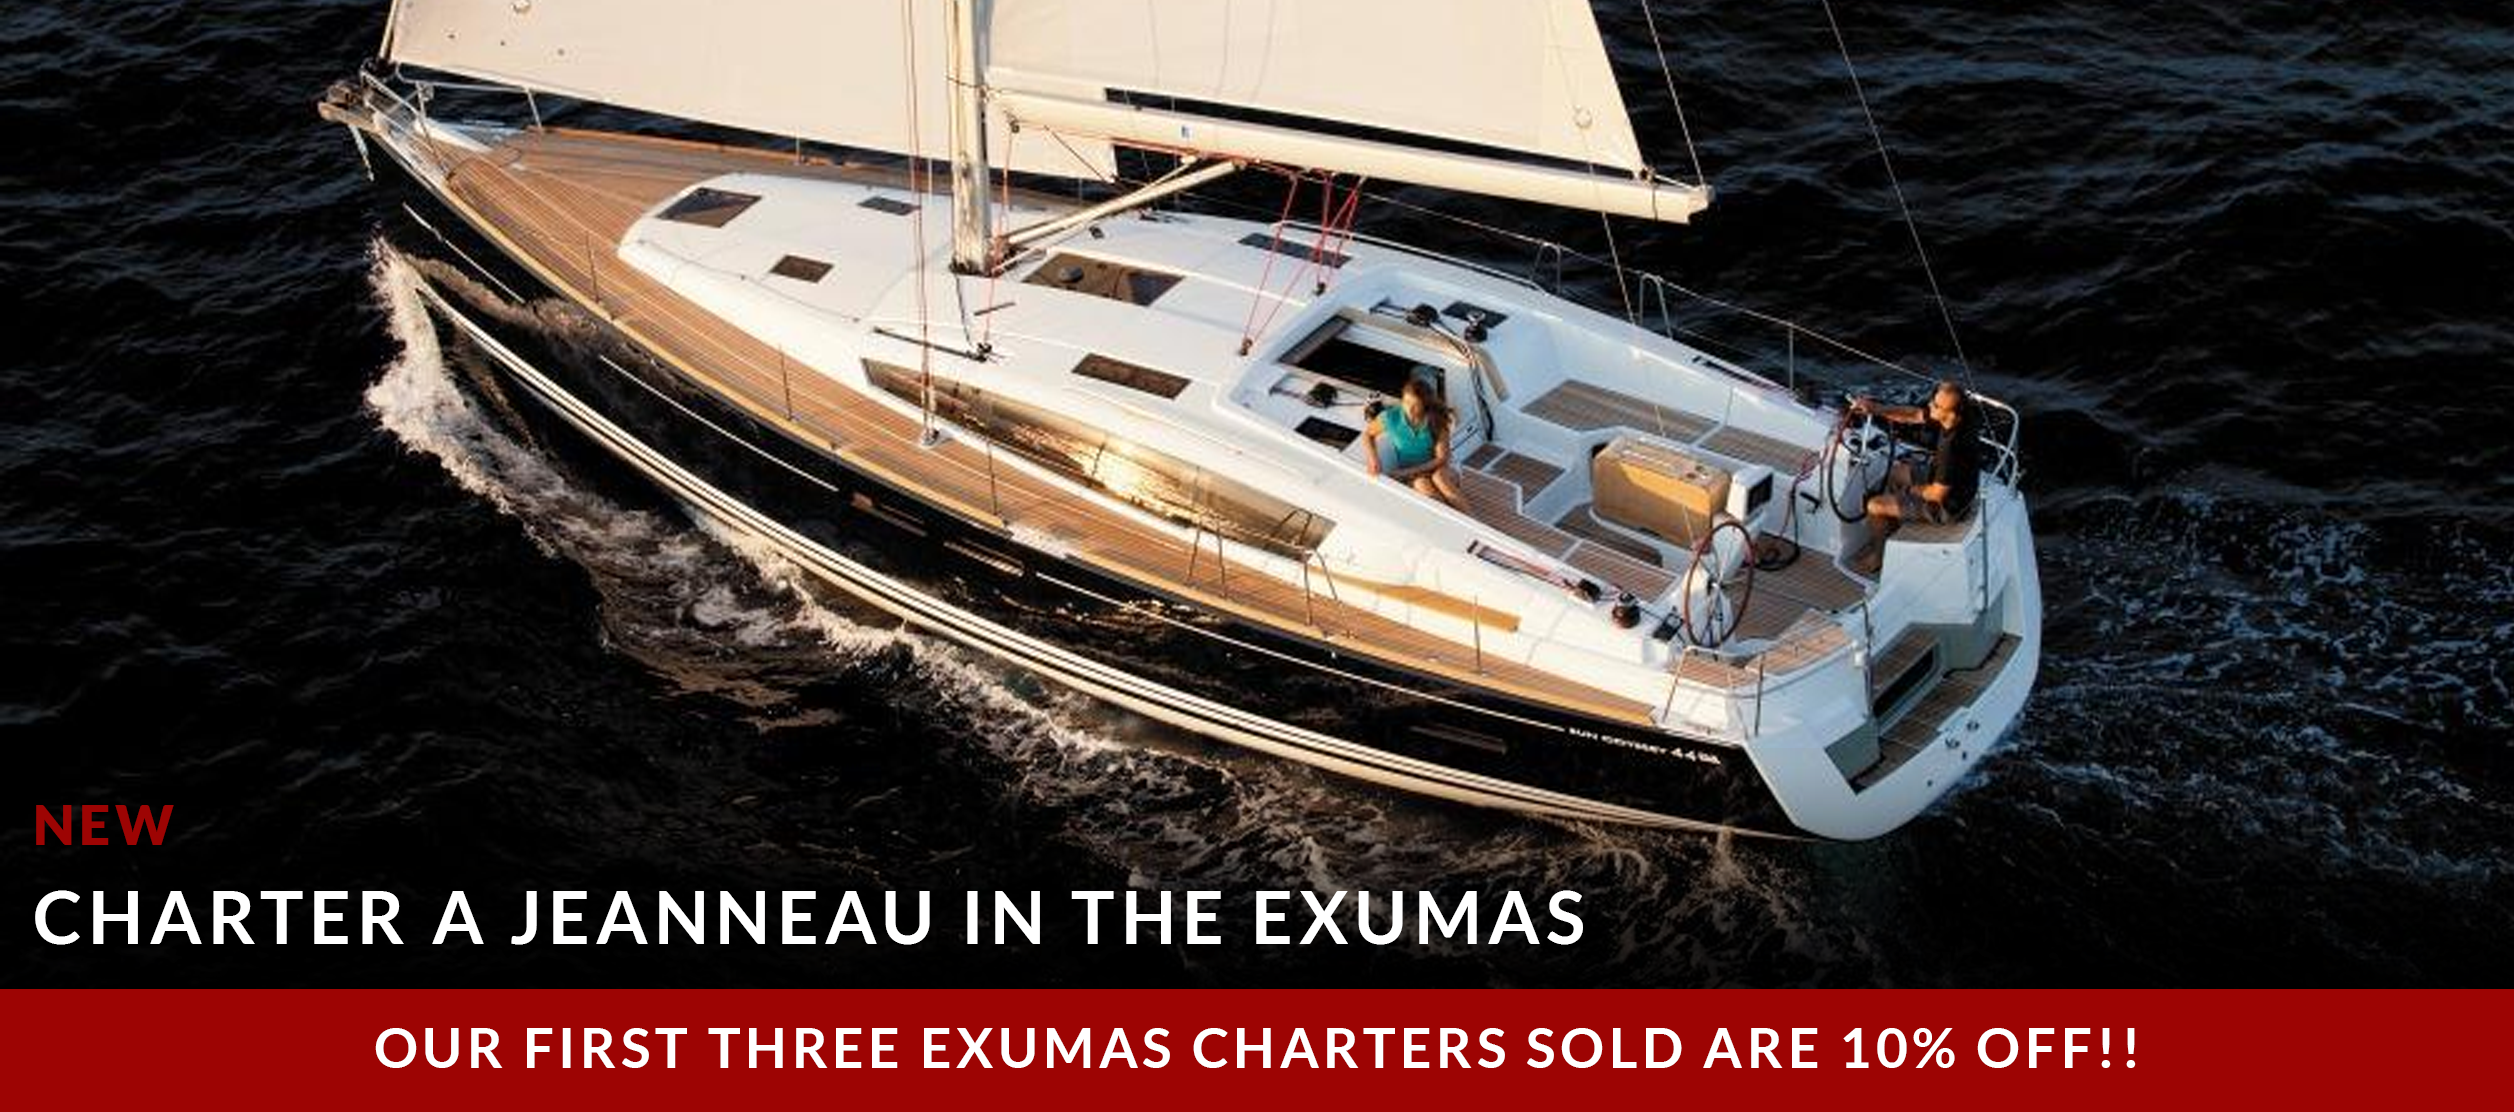 Charter a Jeanneau in the Exumas